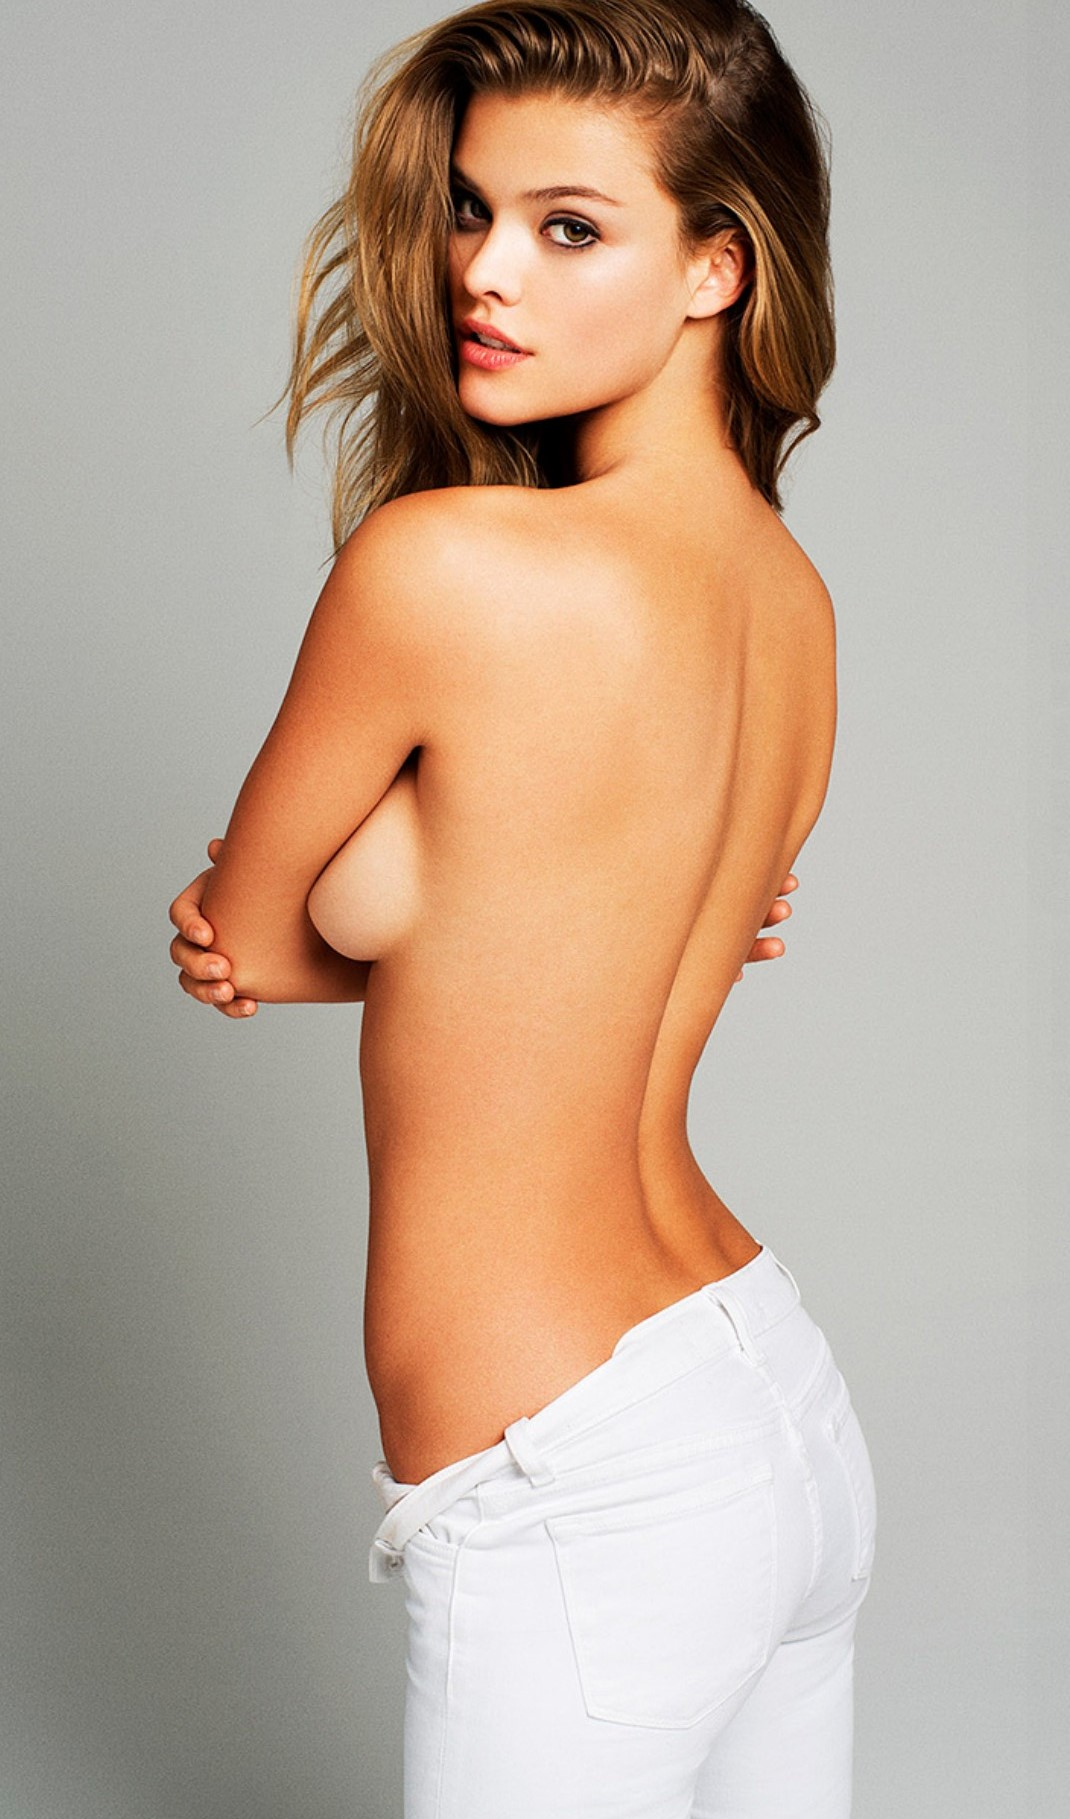 nina-agdal-esquire-usa-may-2013-outtakes-by-derek-kettela-01